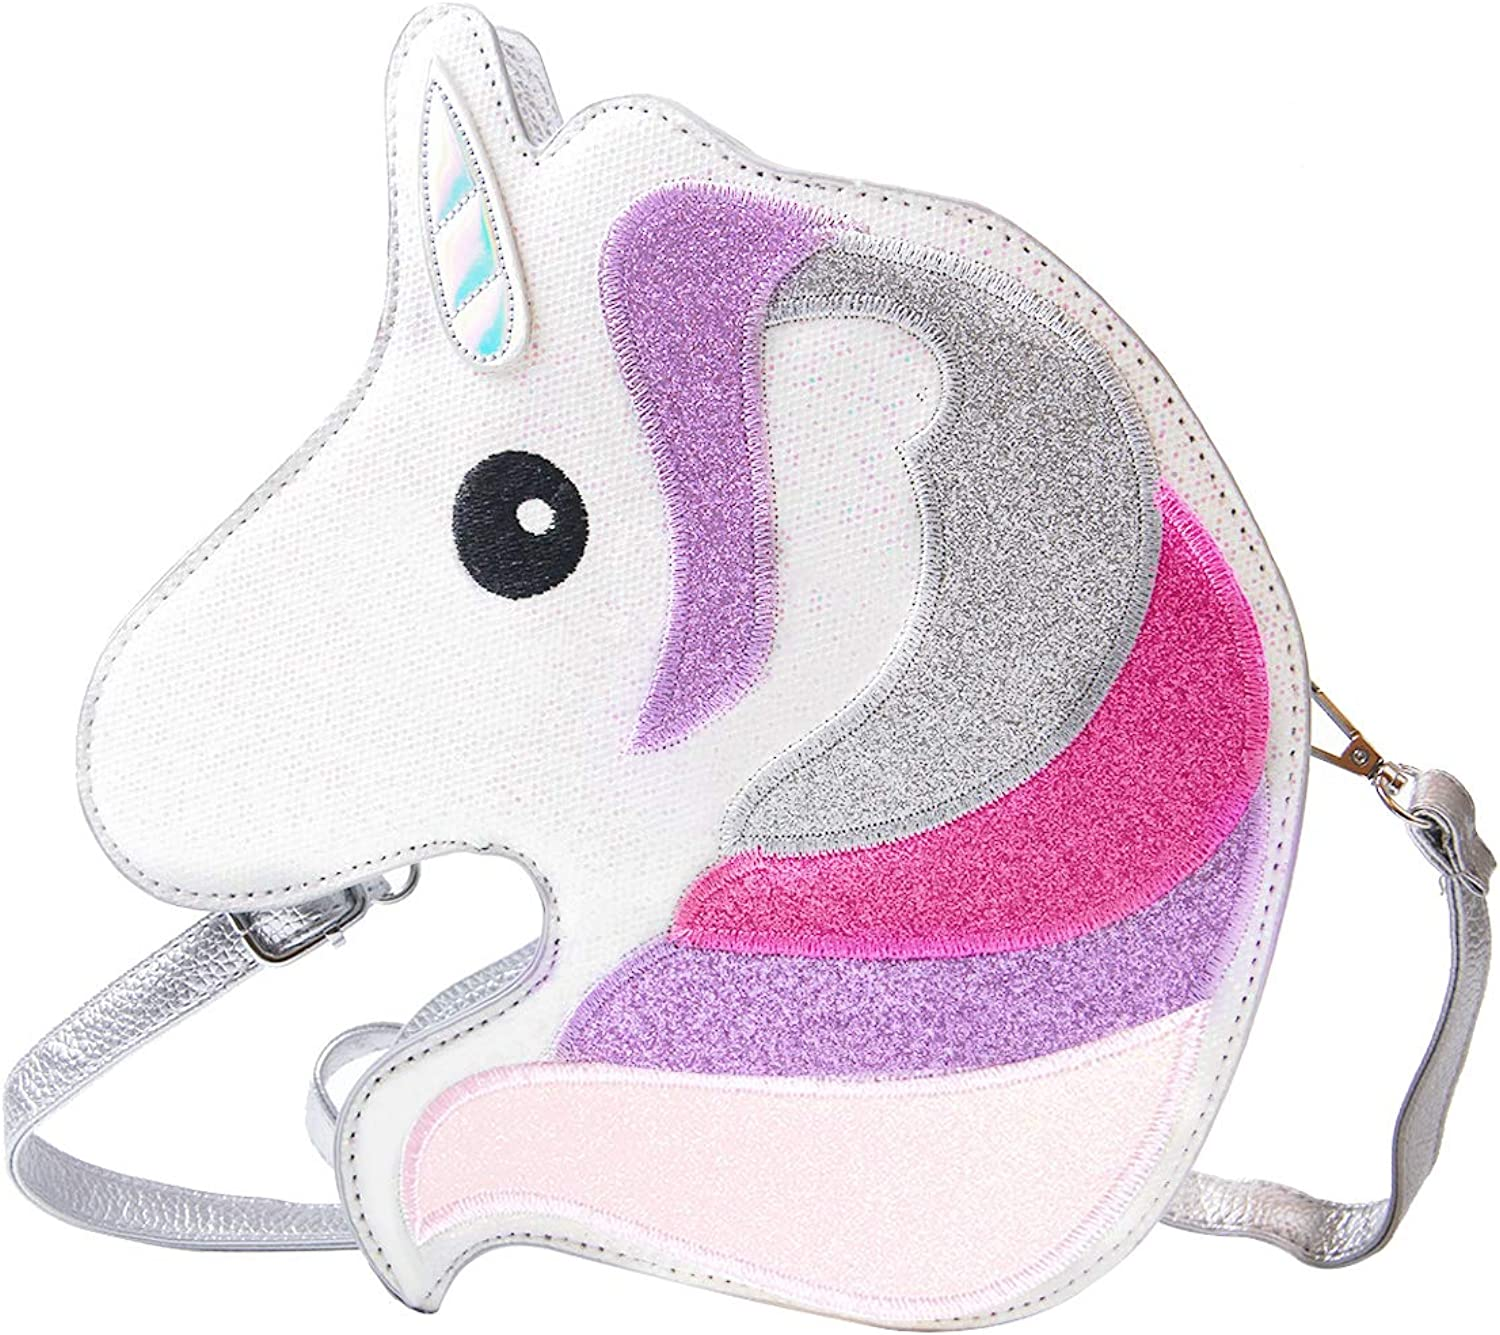 SUKUTU Girls Fancy 3D Glitter Unicorn Purses, New Sparkly Vogue Satchel Novelty Animal Shape Crossbody Bag for women